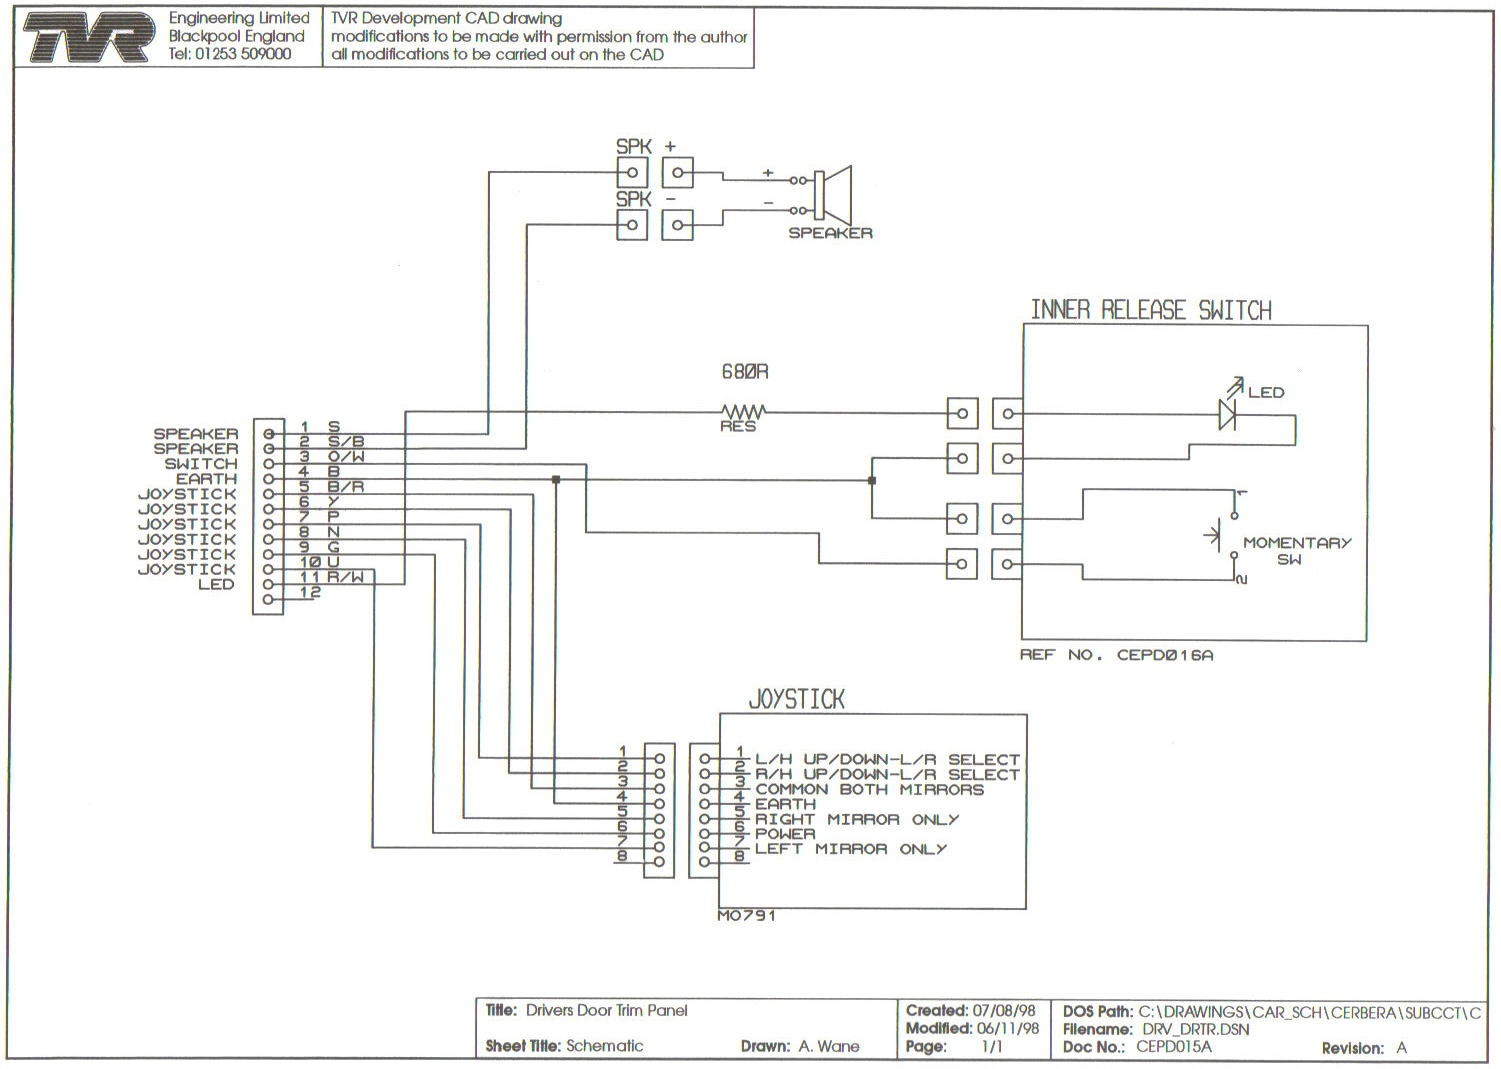 cepd015a Drivers Door cepd015a drivers door jpg mbe ecu wiring diagram at eliteediting.co